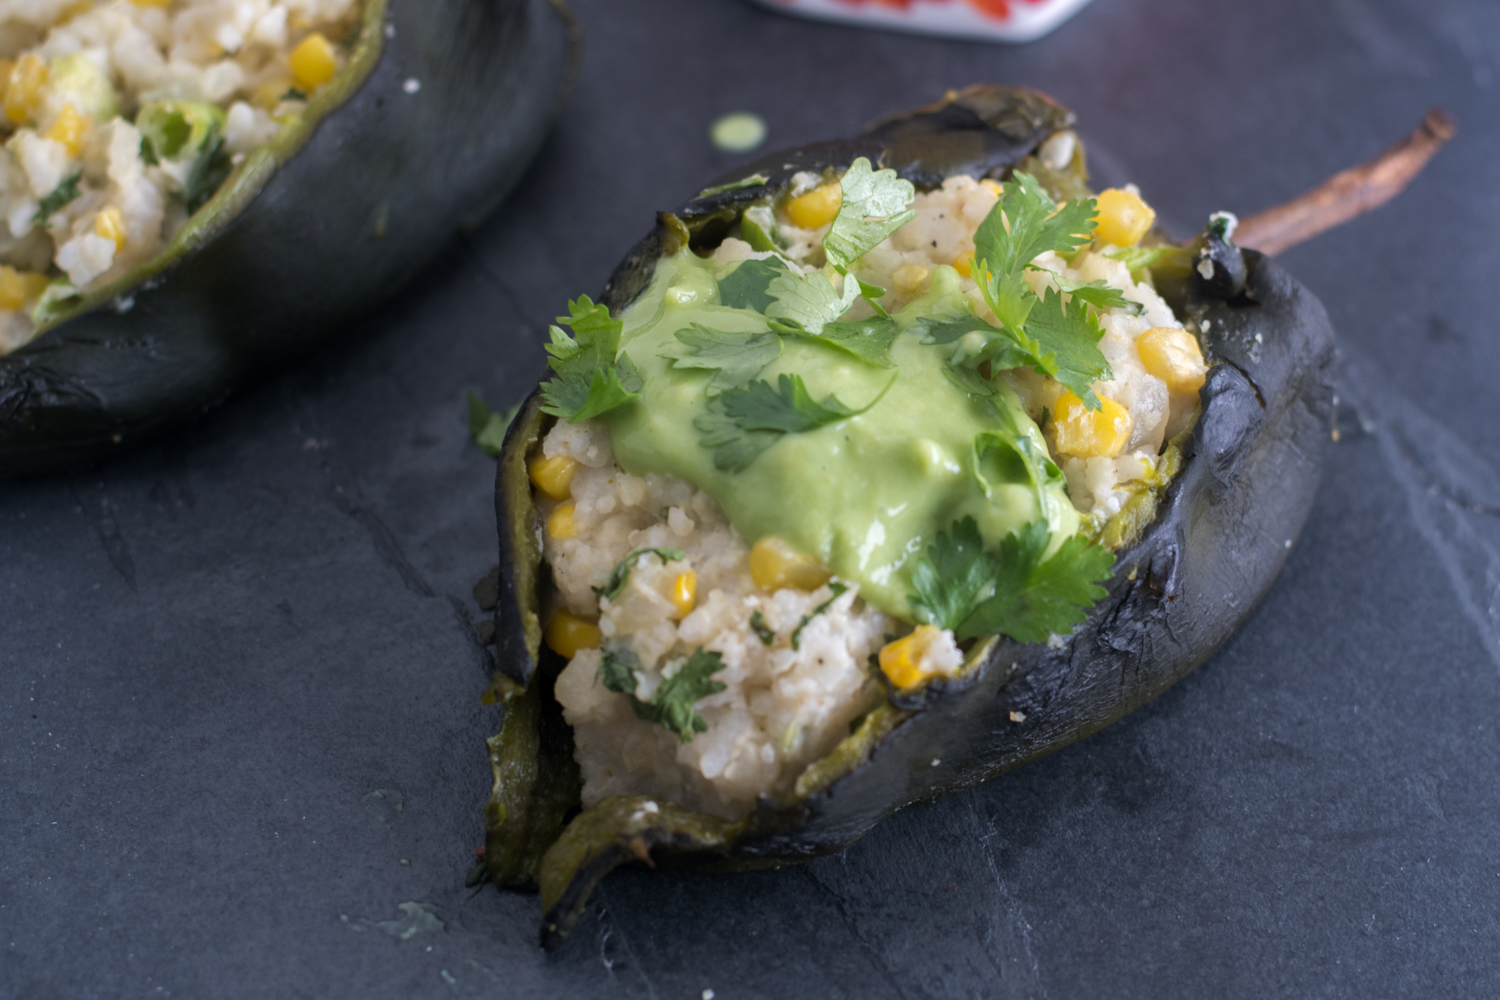 Roasted poblano peppers are stuffed with a creamy, rice filling. I like to serve these with an avocado and tomatillo salsa. #vegan #glutenfree